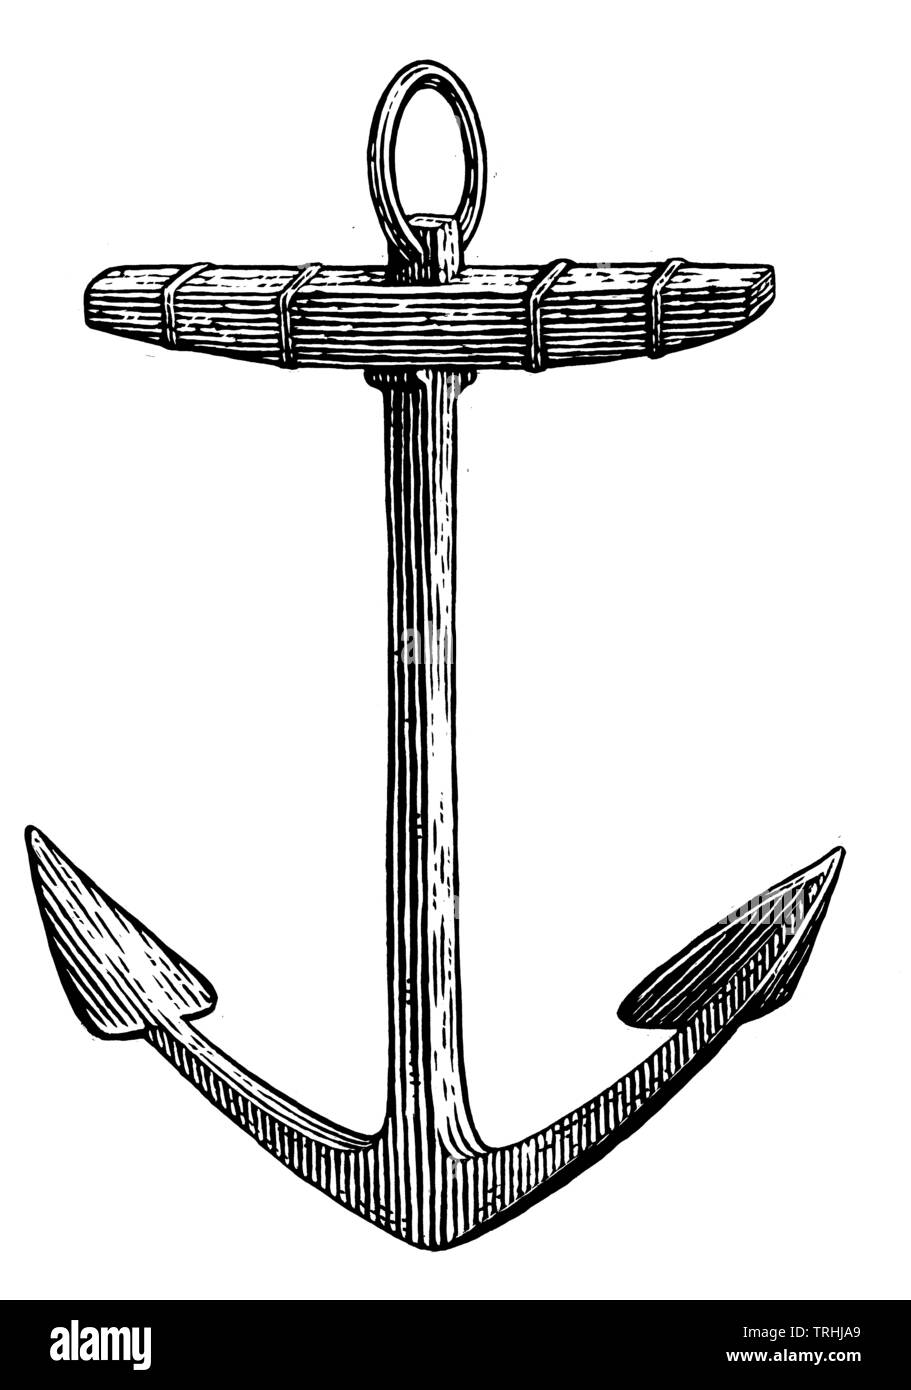 Anchor on white background - Stock Image